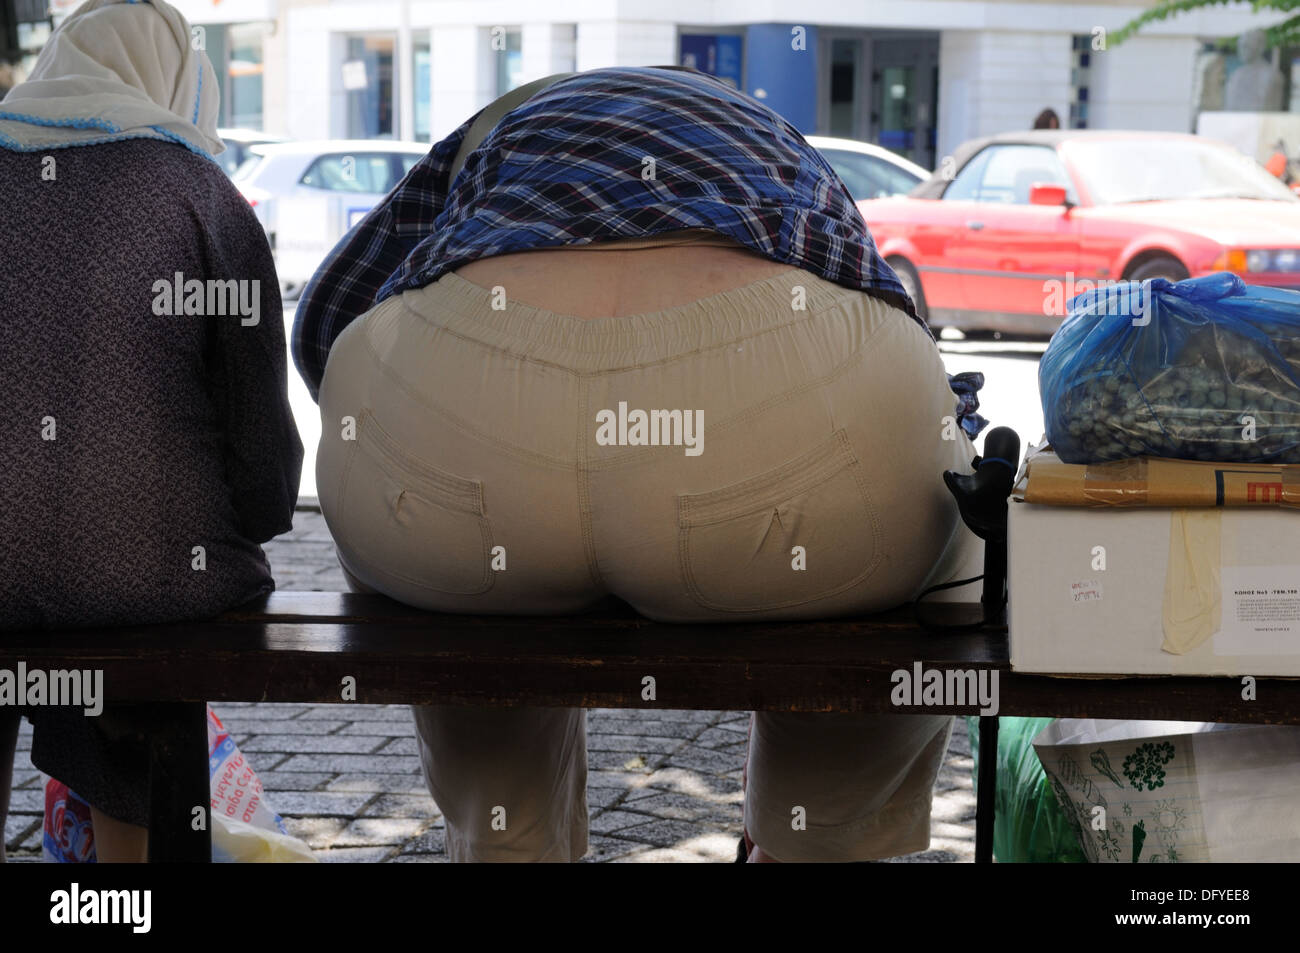 fat bum stock photos & fat bum stock images - alamy